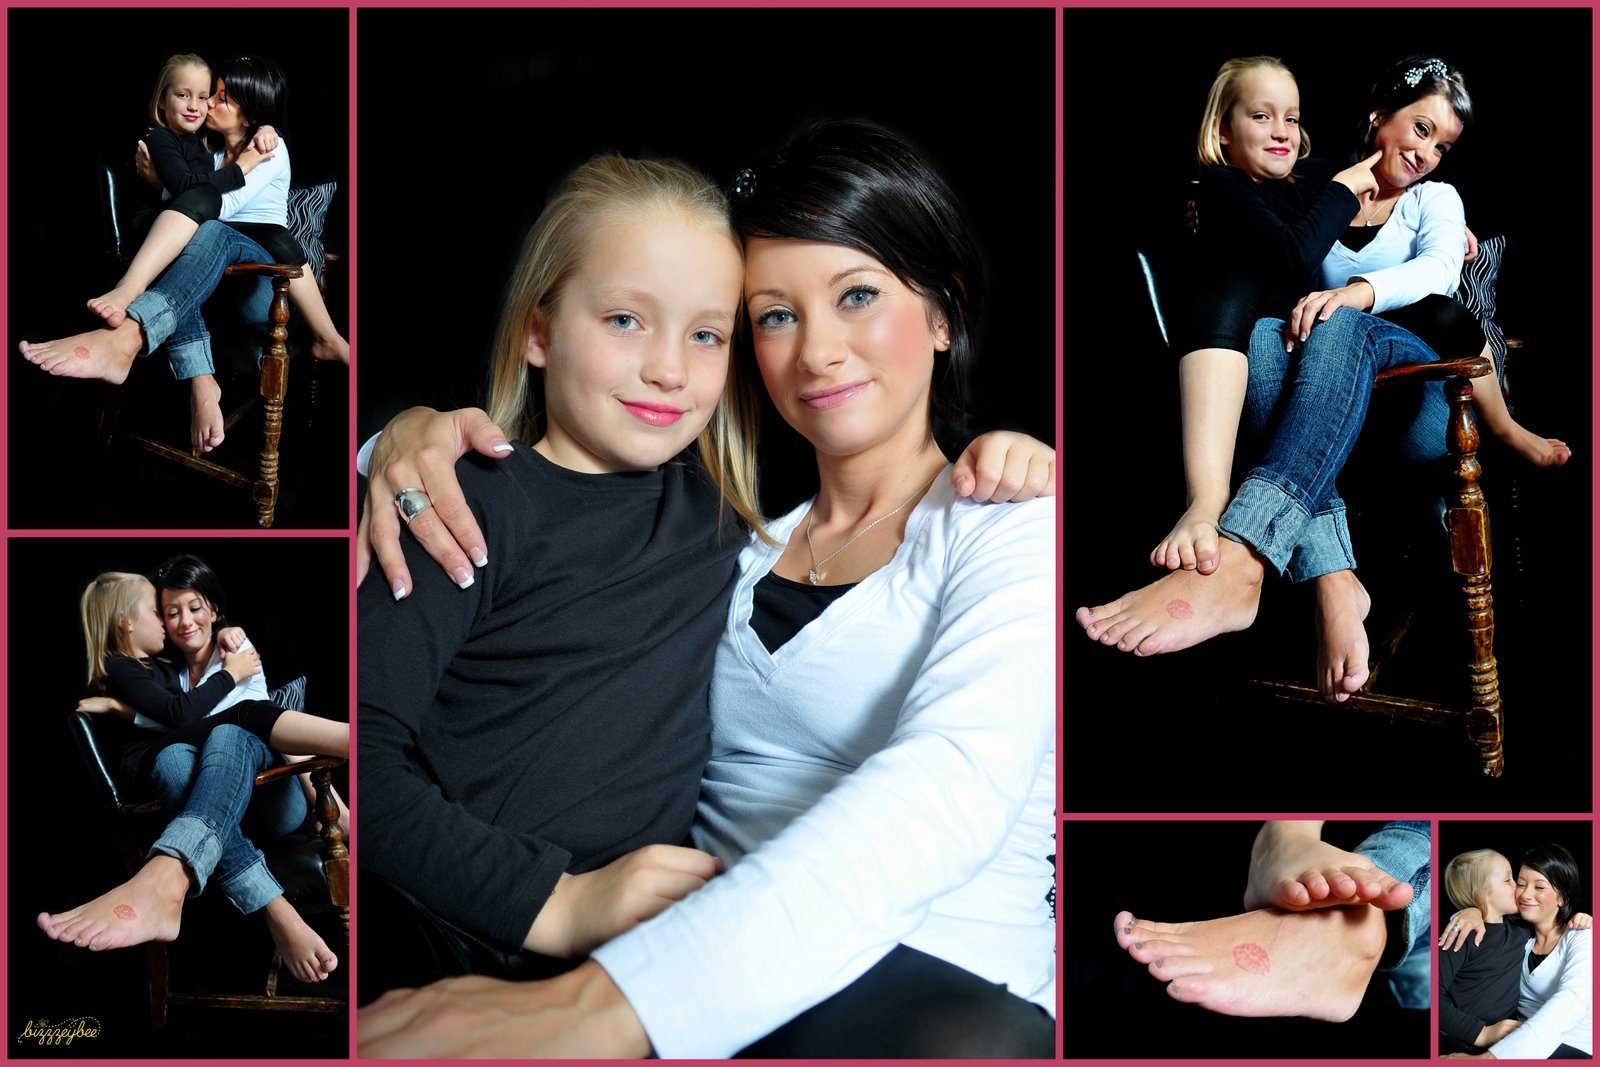 Bizzzeybee Photography: Sweet Mother / Daughter Interaction